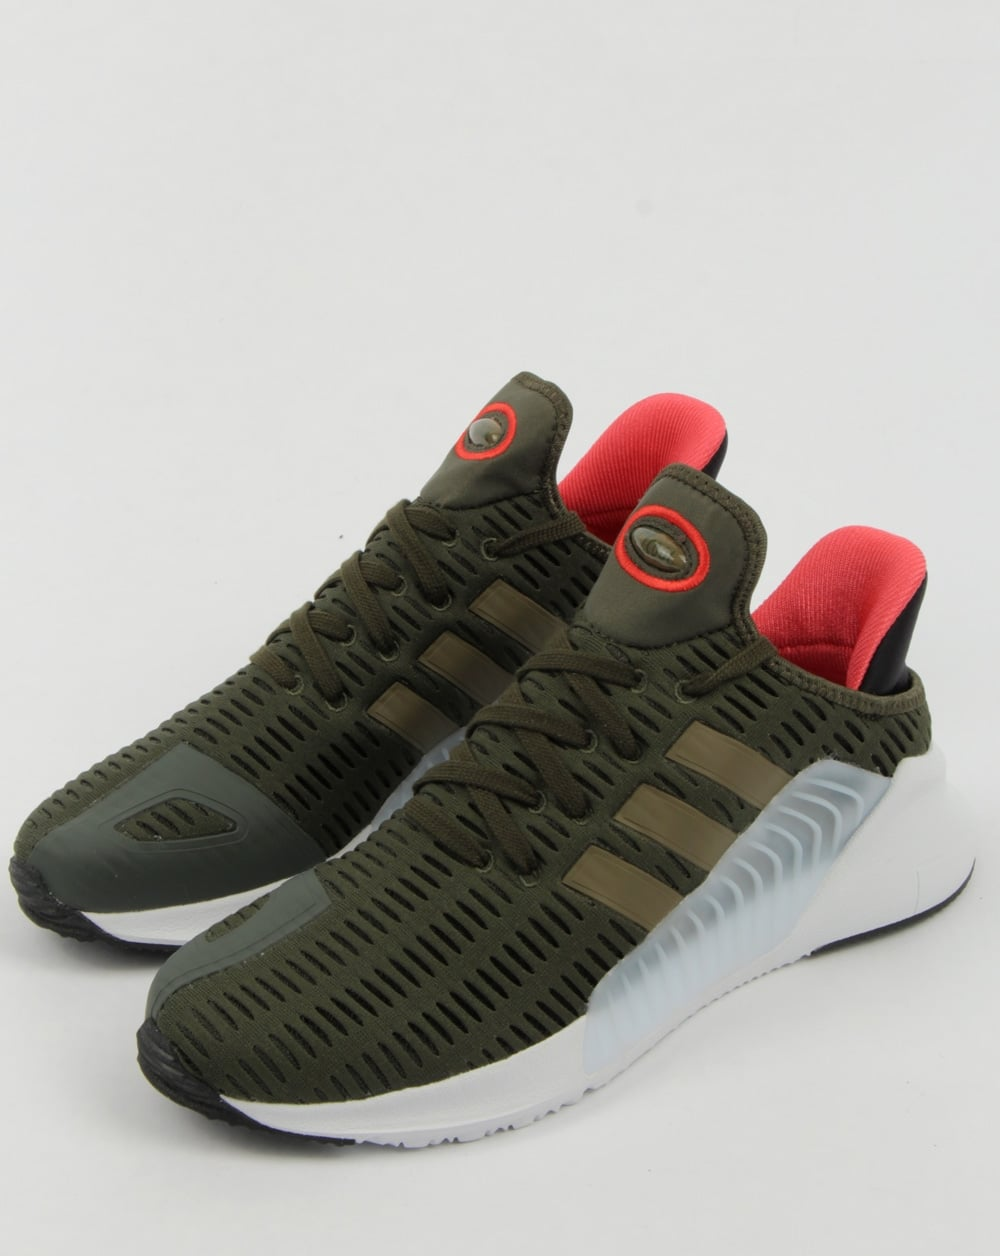 new concept 16522 e2eaa Adidas Climacool 02 17 Trainers Night Cargo Olive